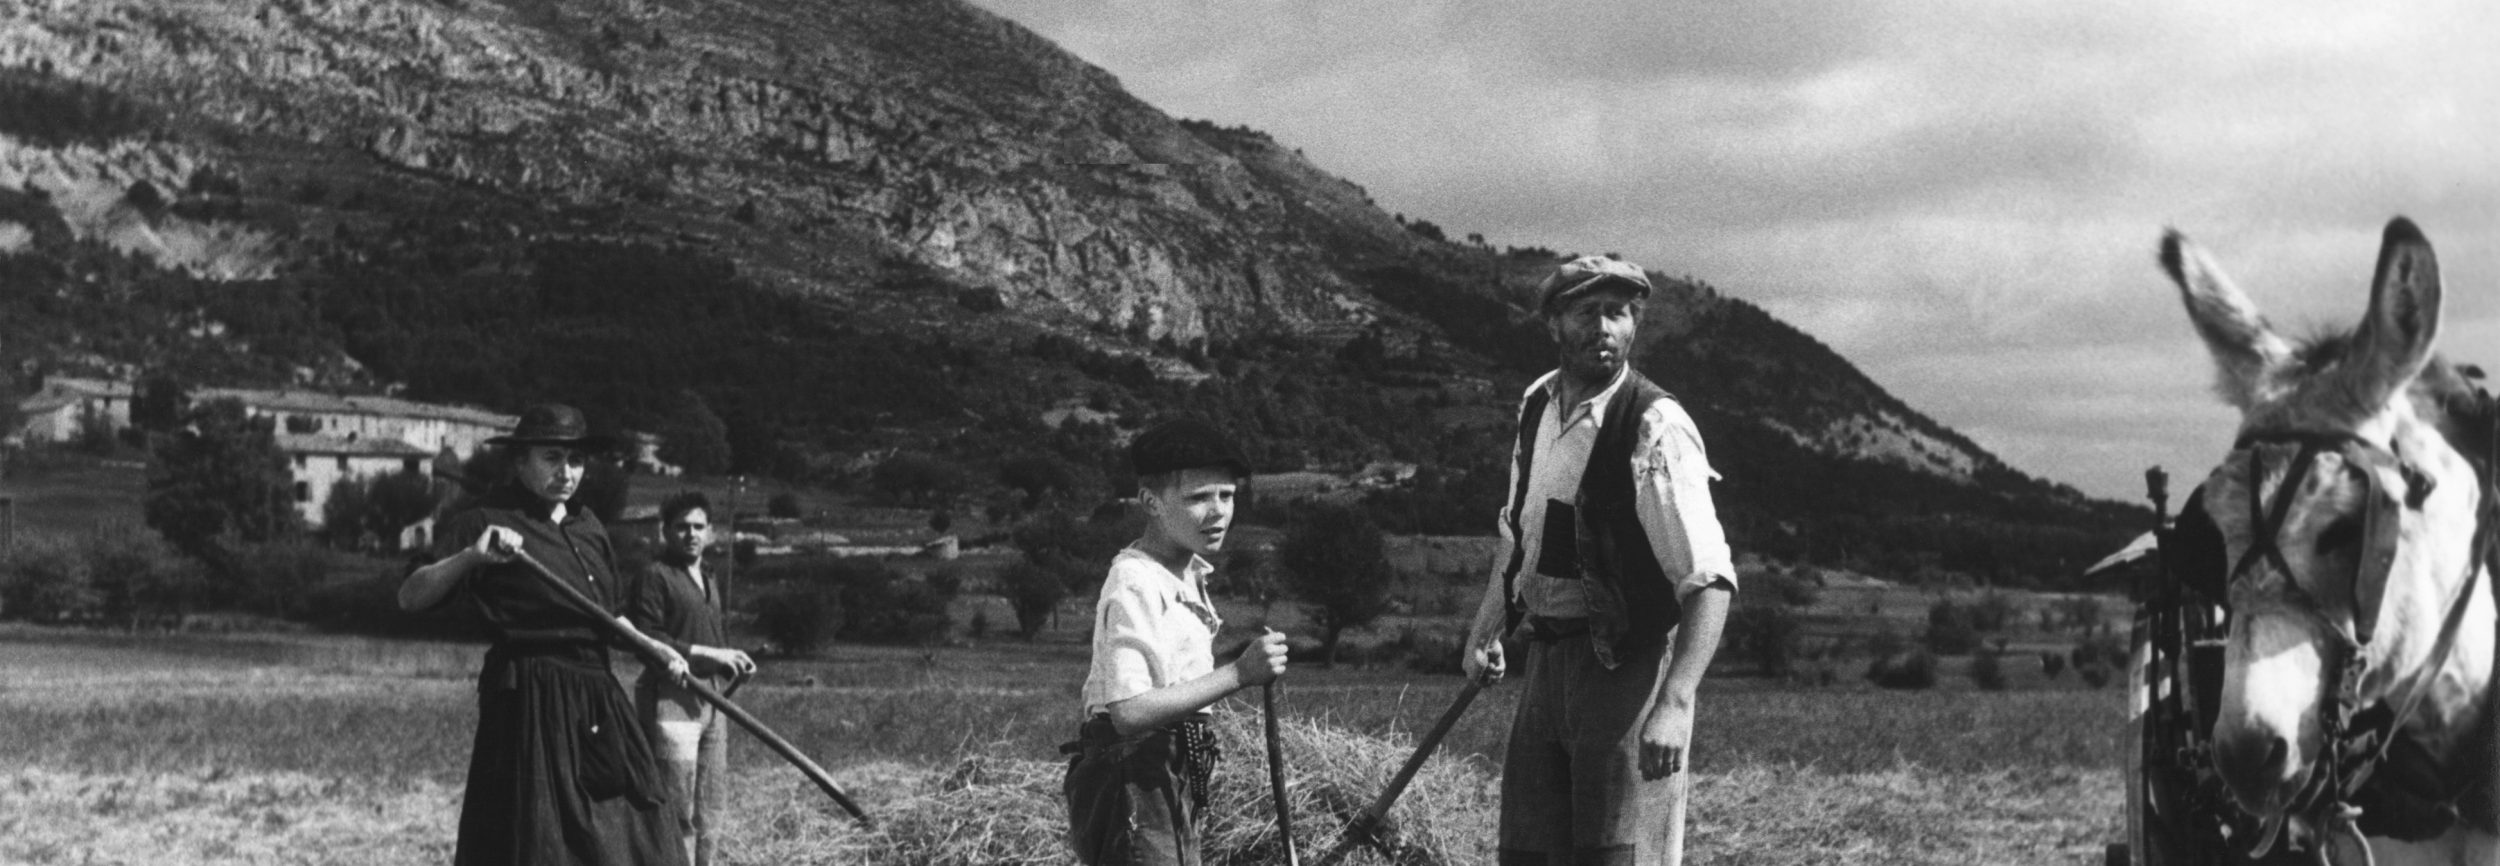 Michel and family in an early scene from the 1952 film Forbidden Games